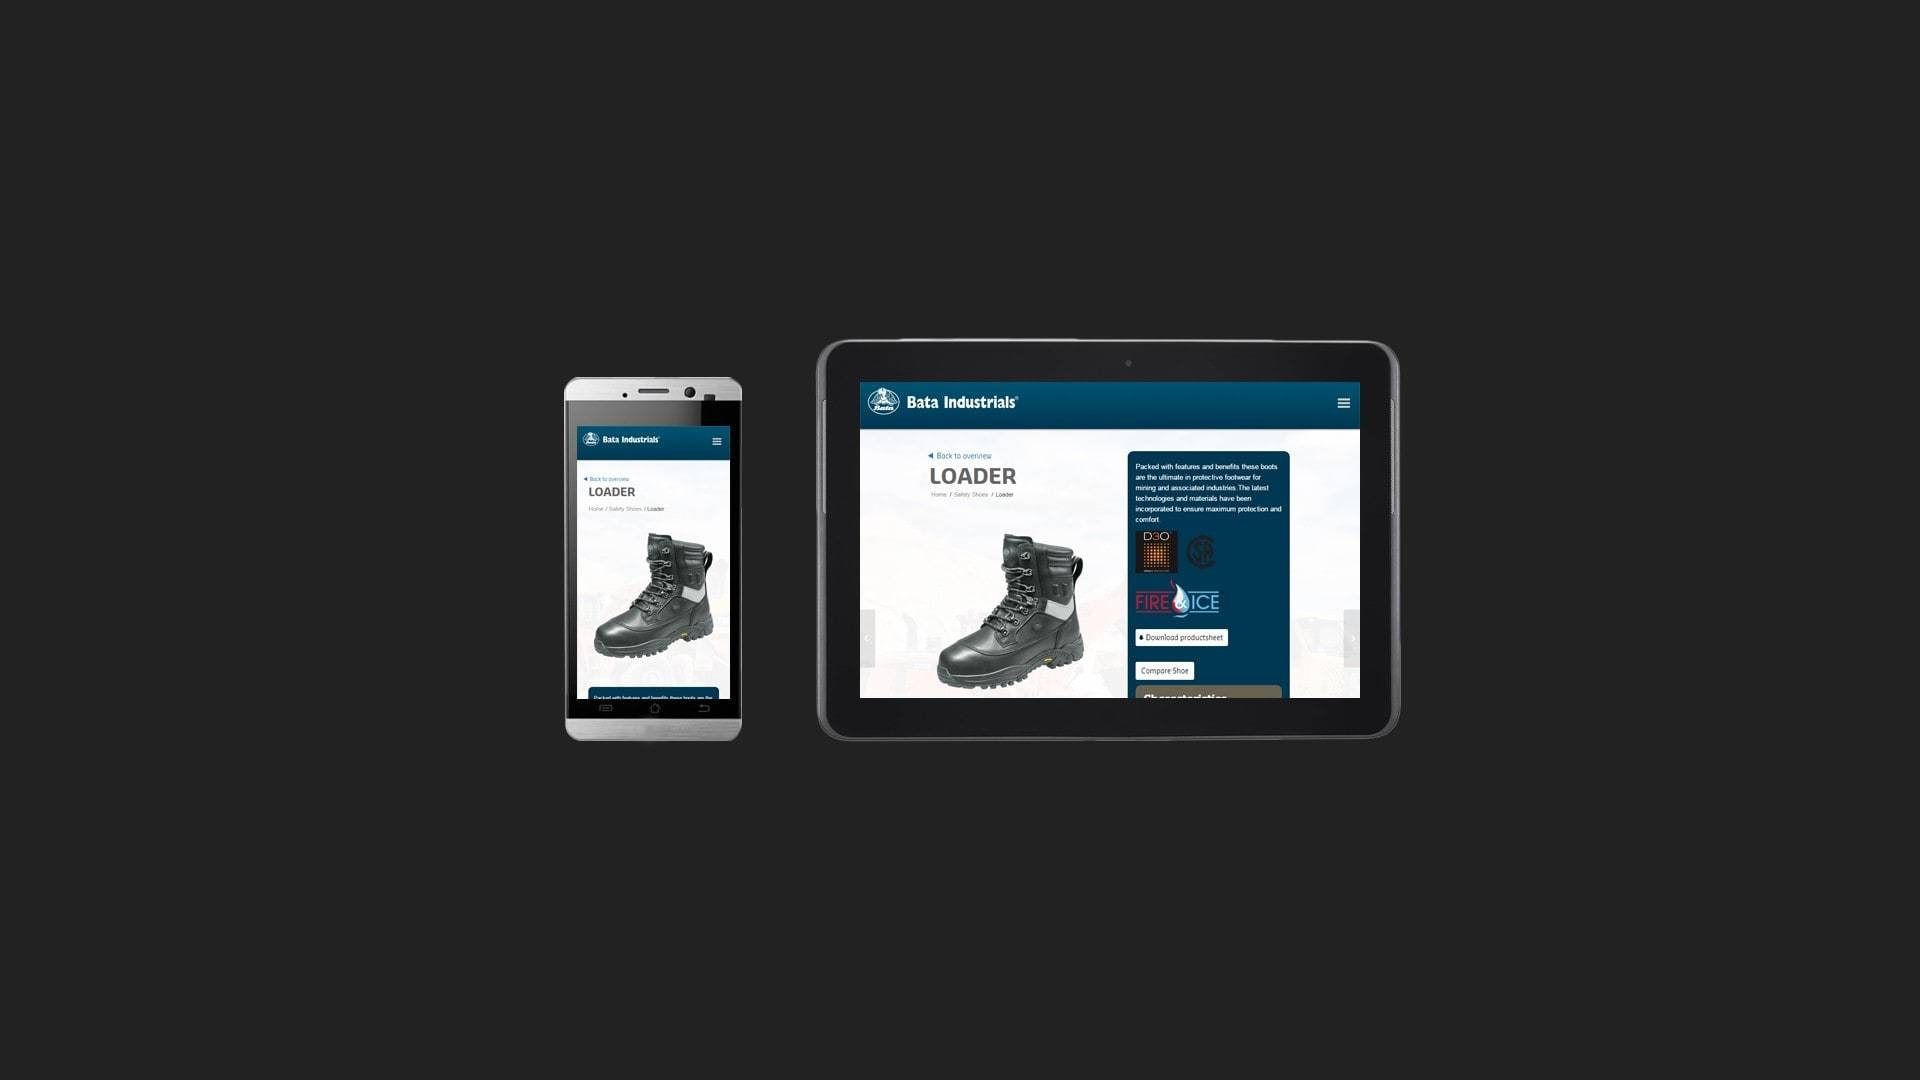 Bata Industrials Safety Shoes Website for Mobile and Tablets